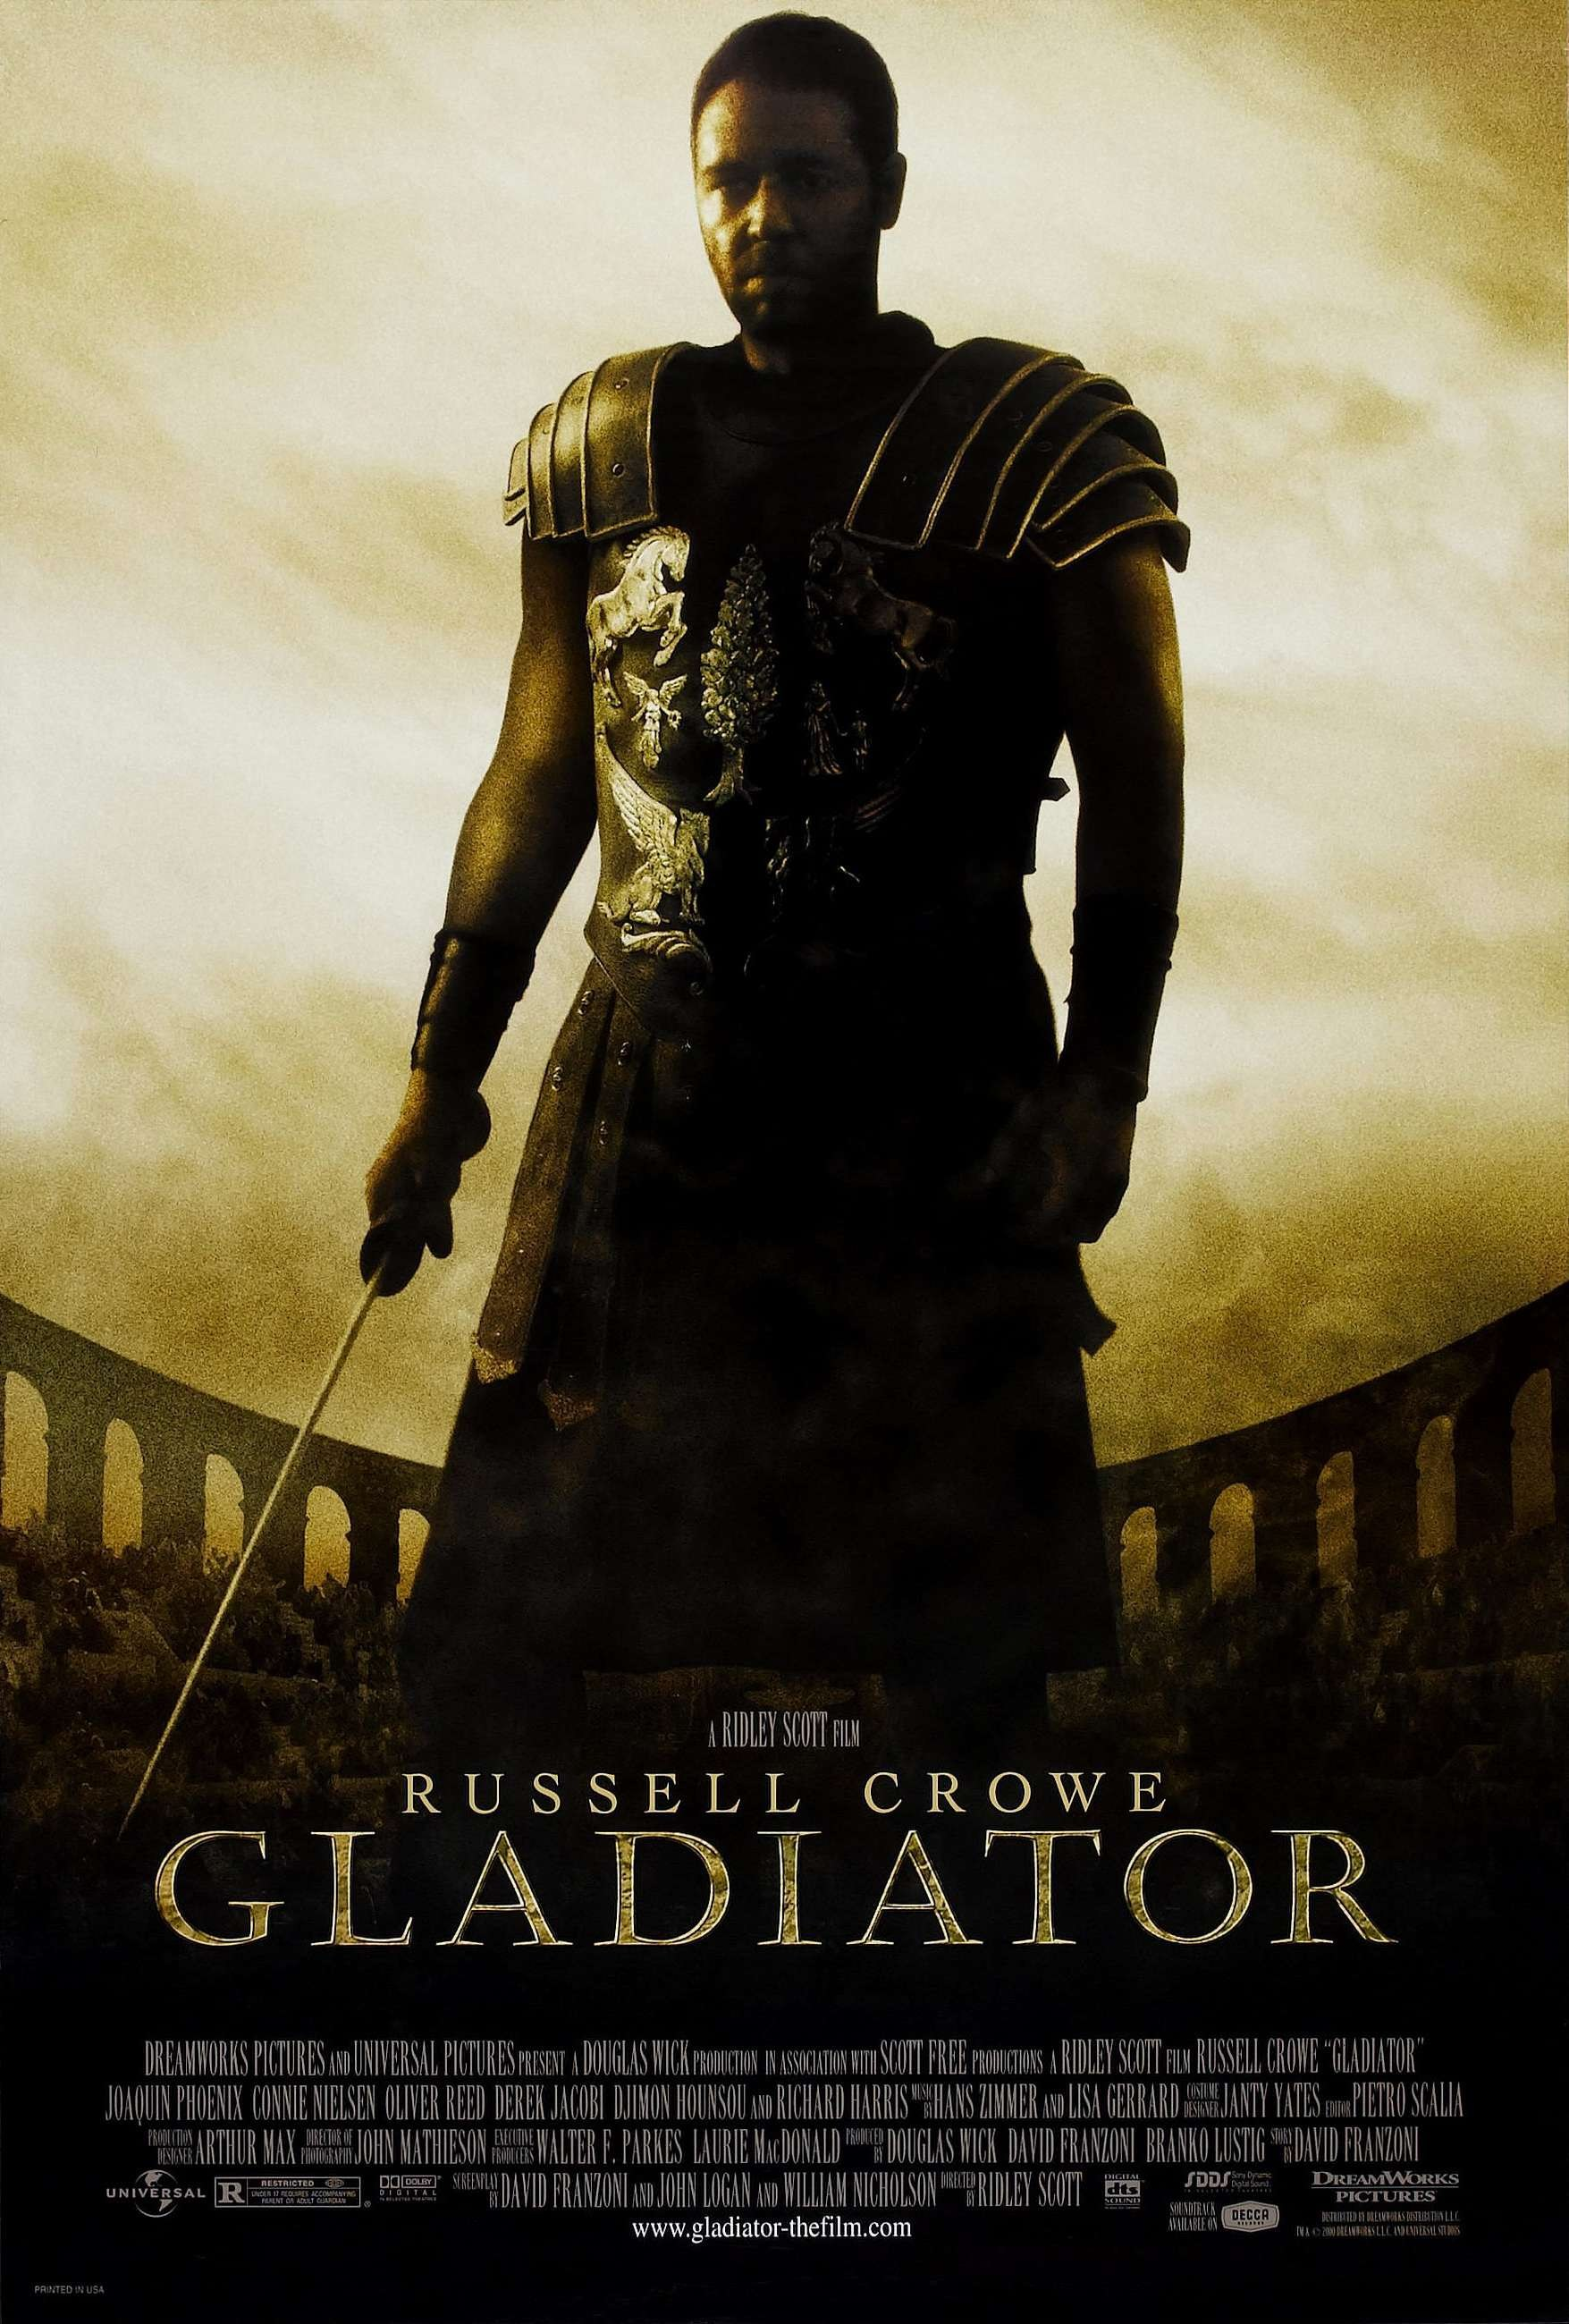 Gladiator (2000) - Directed by: Ridley ScottStarring: Russell Crowe, Joaquin Phoenix, Richard Harris, Connie NielsonRated: RRunning Time: 2h 35mTMM Score: 5 Stars (Loved It)STRENGTHS: Production, Acting, SpectacleWEAKNESSES: Final Speech/Ending